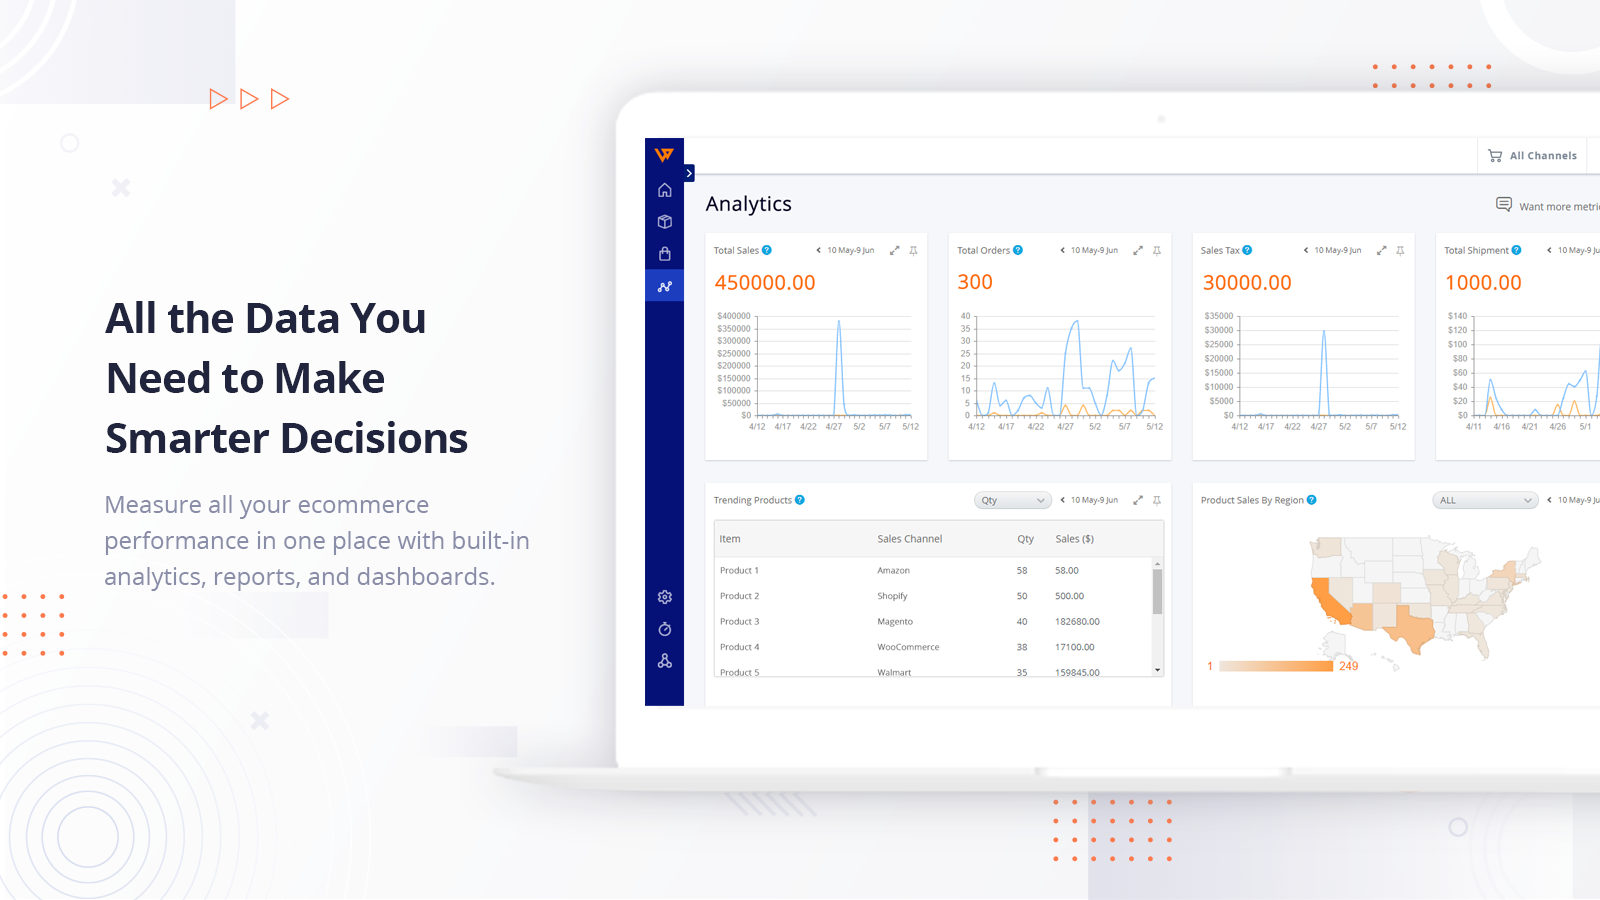 All the Data You Need to Make Smarter Decisions